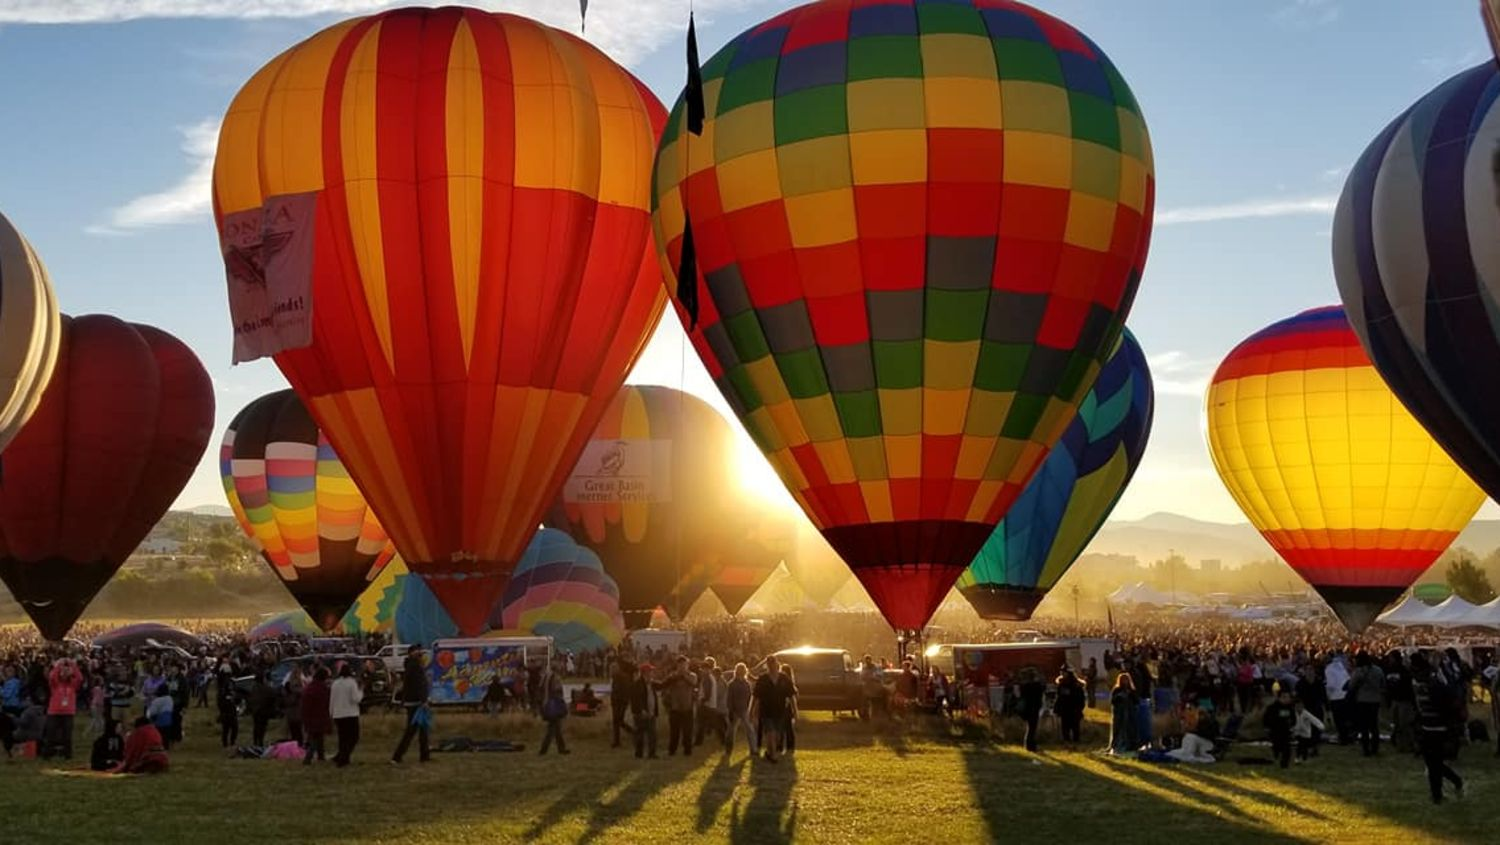 Hot air balloons with crowd watching